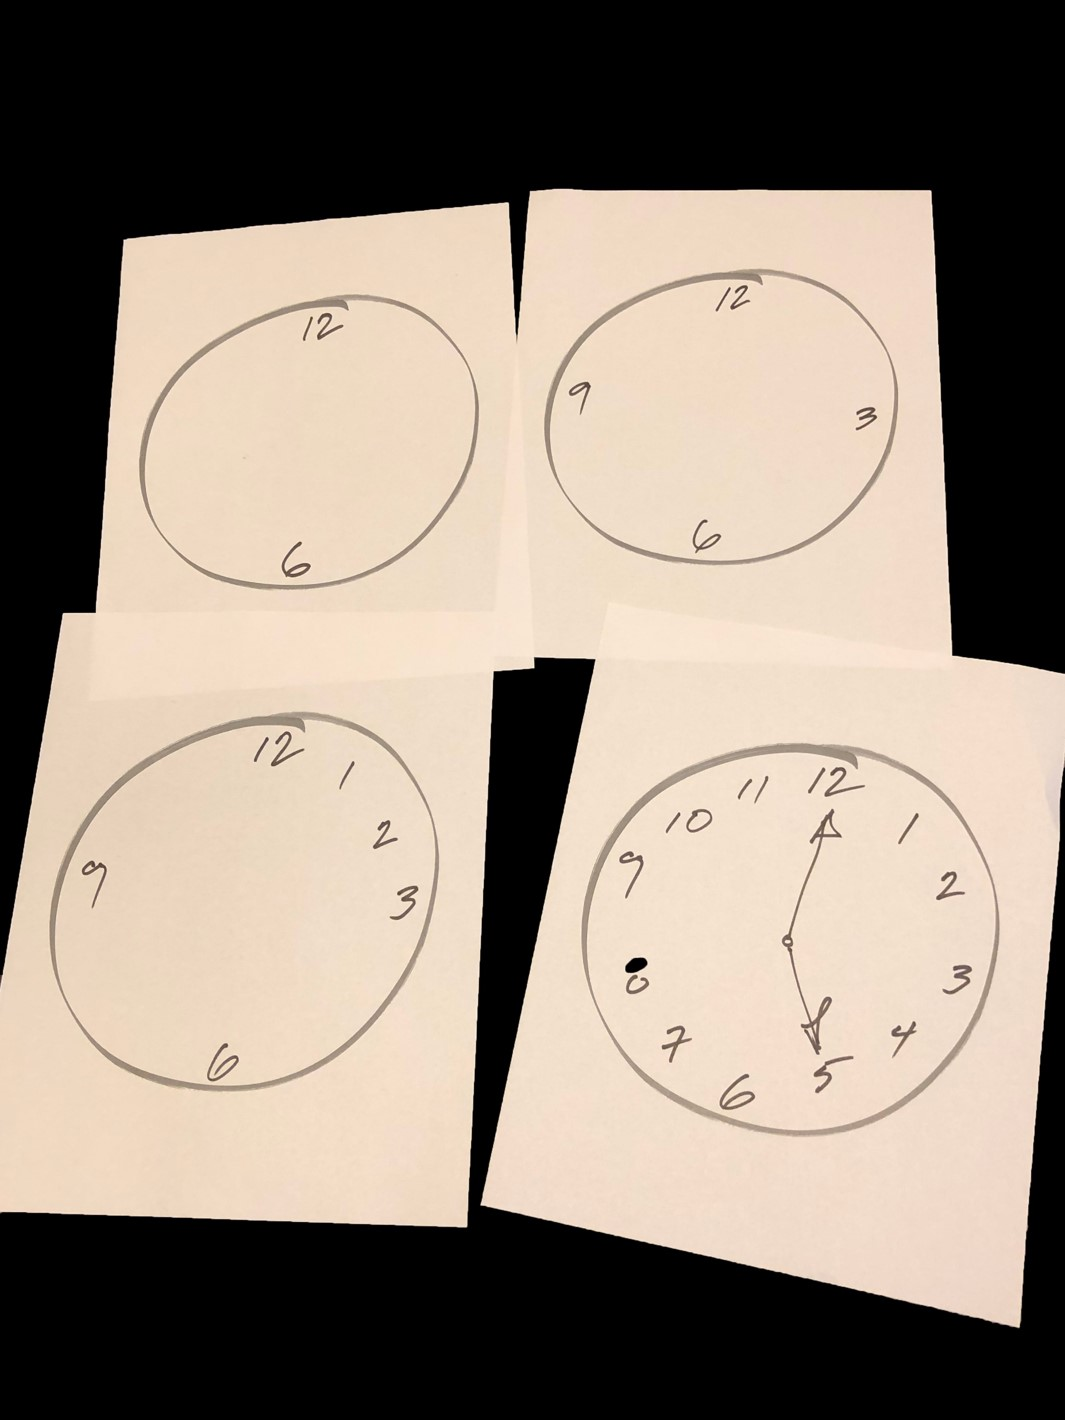 THE EASY WAY TO DRAW A CLOCK. First divide in half, then each half in half again then each quarter into thirds.